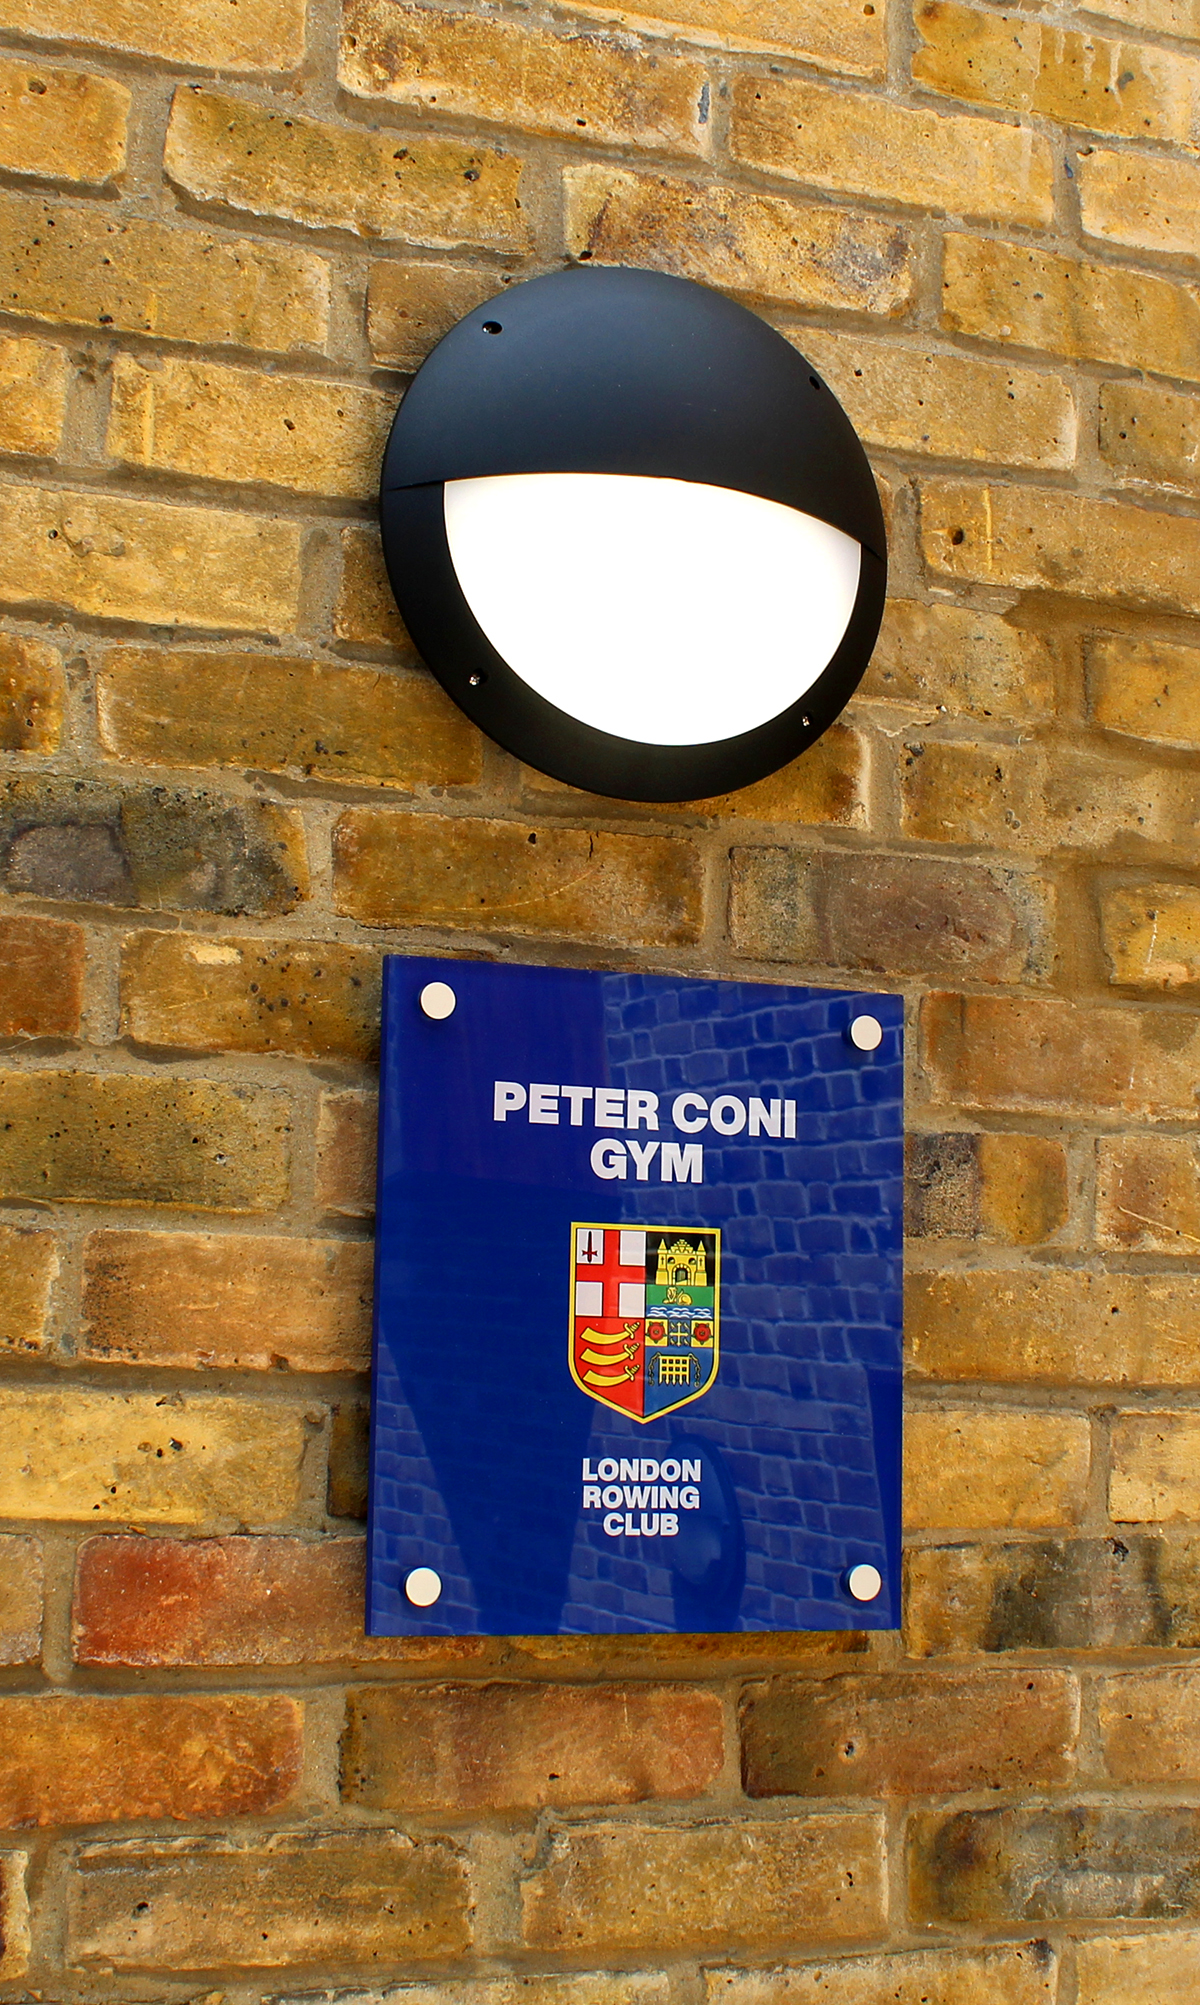 The_Peter_Coni_Gym_Entrance_Plaque_by_Bob_Silver_2019.jpg